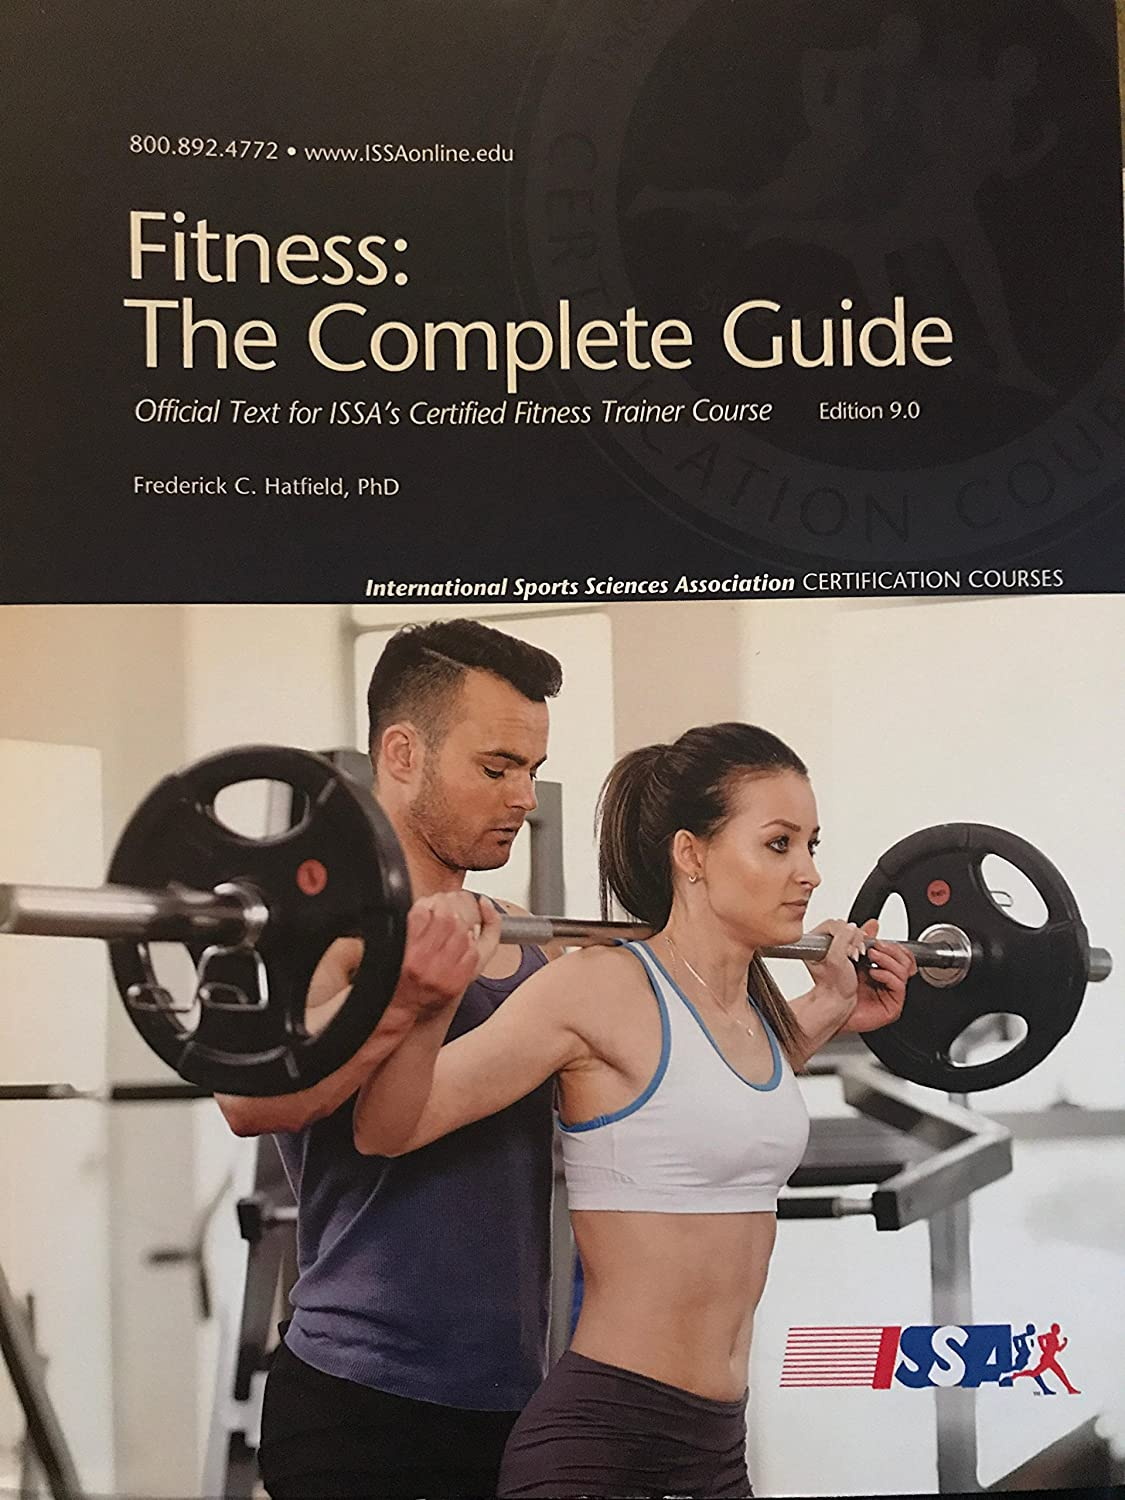 Issa Fitness The Complete Guide Edition 90 Amazon Industrial